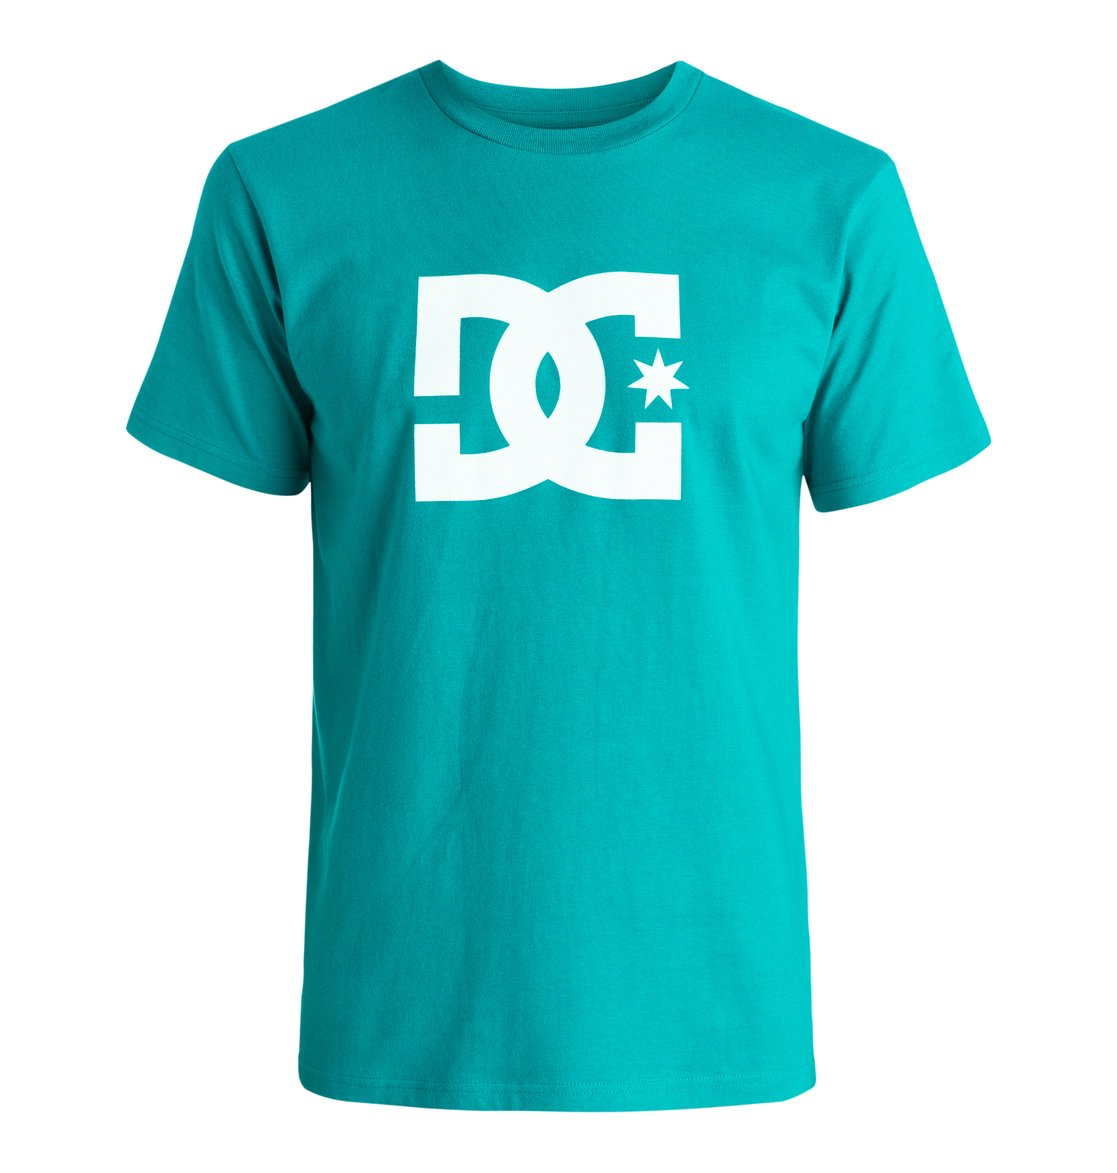 774da93353e0 0 Star - T-Shirt EDYZT03299 DC Shoes